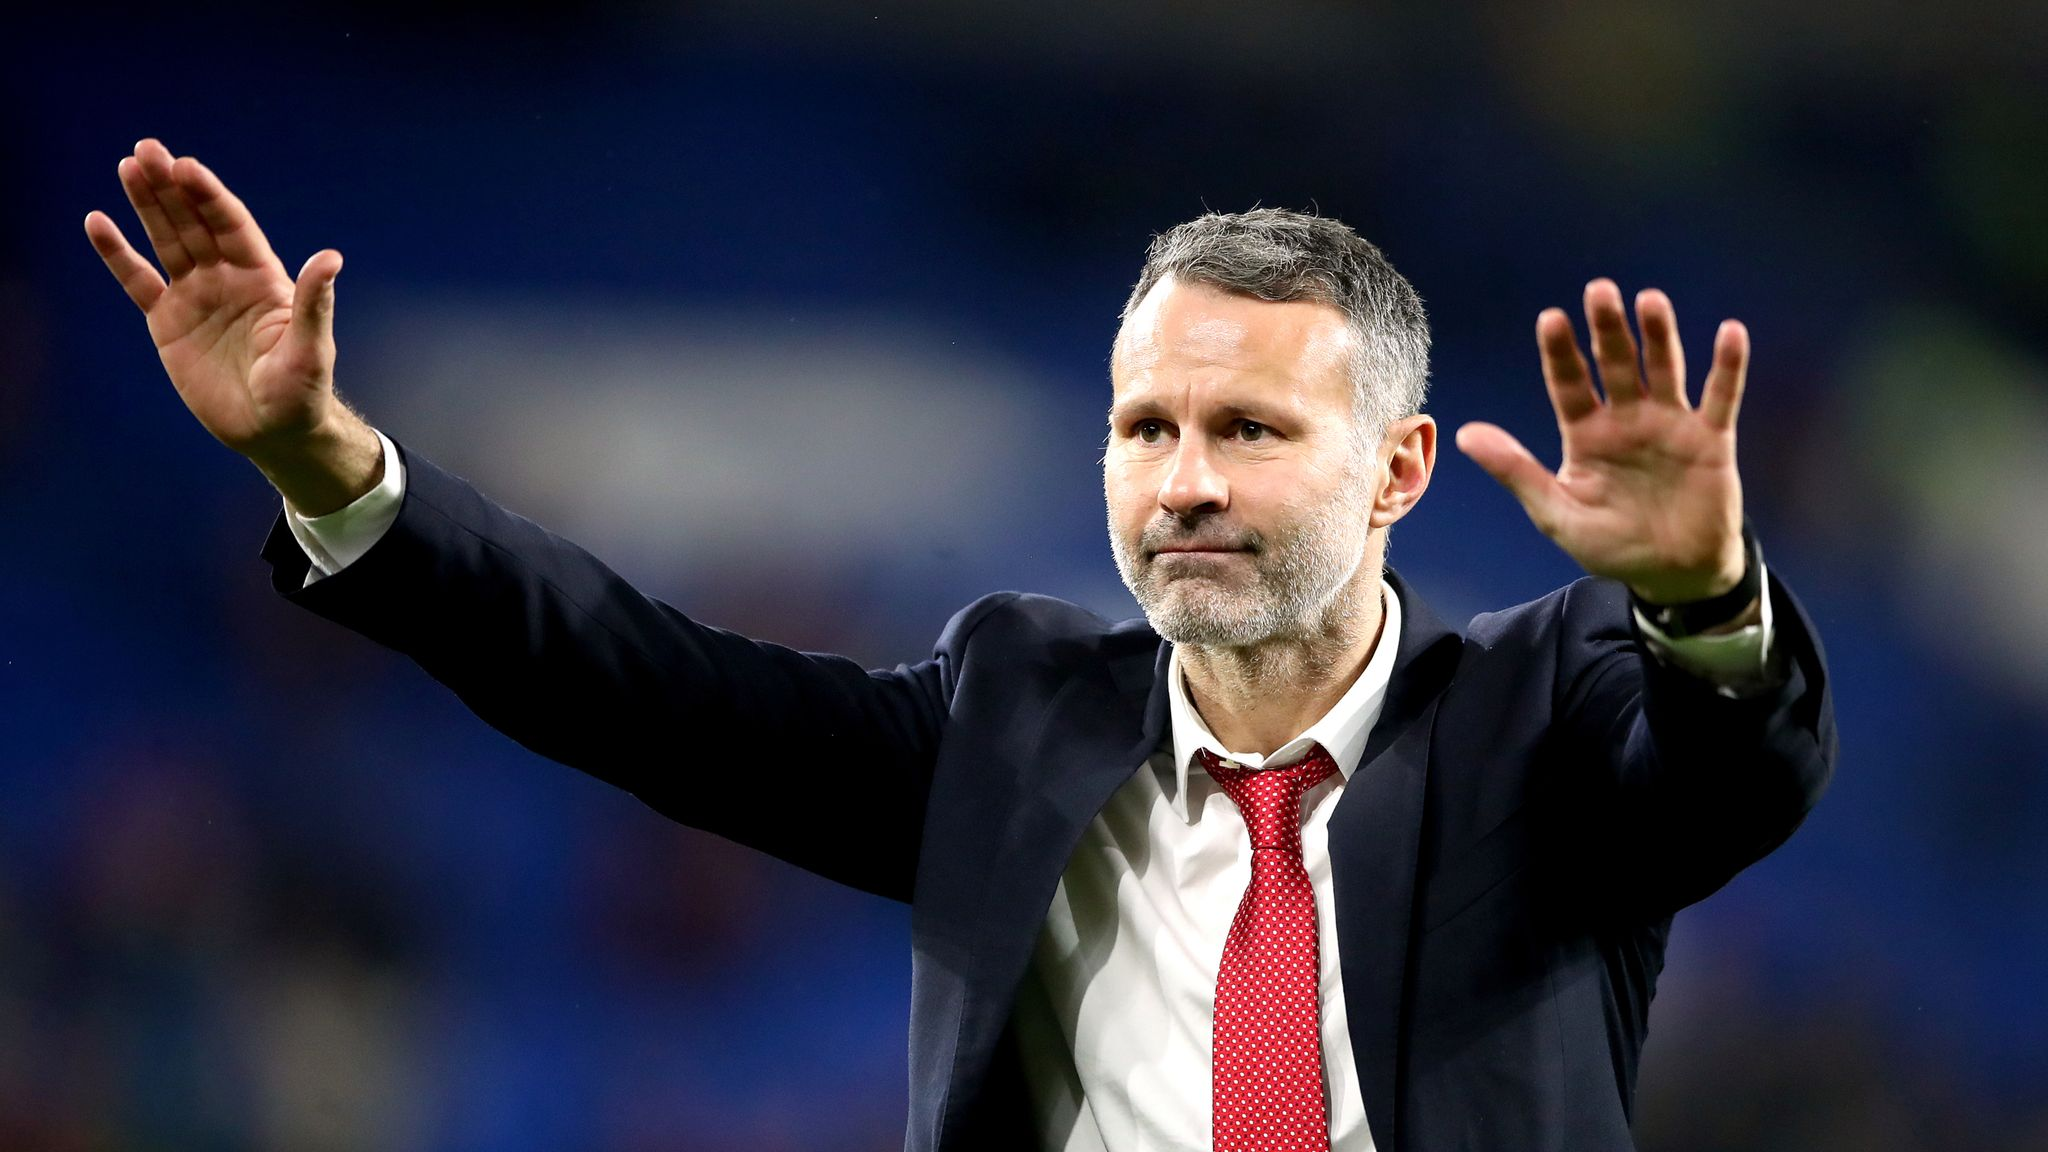 Sir Alex Ferguson says Ryan Giggs is doing a 'great job' as Wales manager